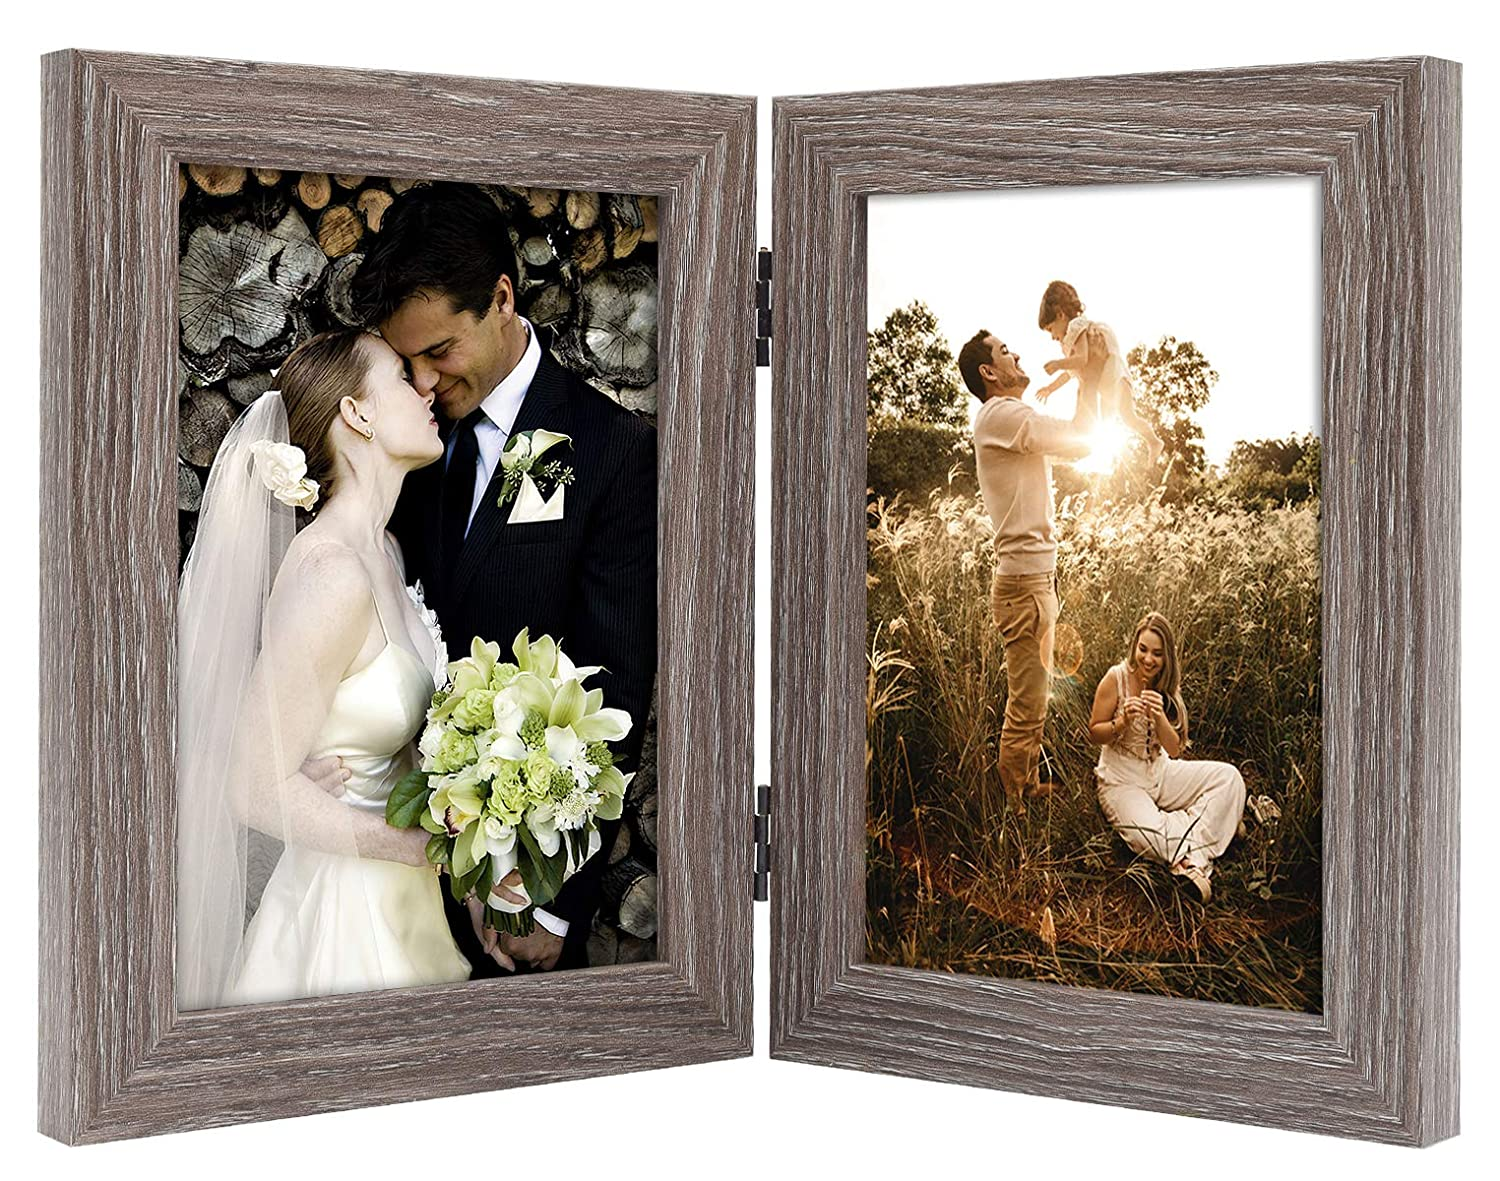 Decorative Hinged Table Desk Top Picture Photo Frame 2 Vertical Openings with Real Glass 4x6 Double, Black Golden State Art